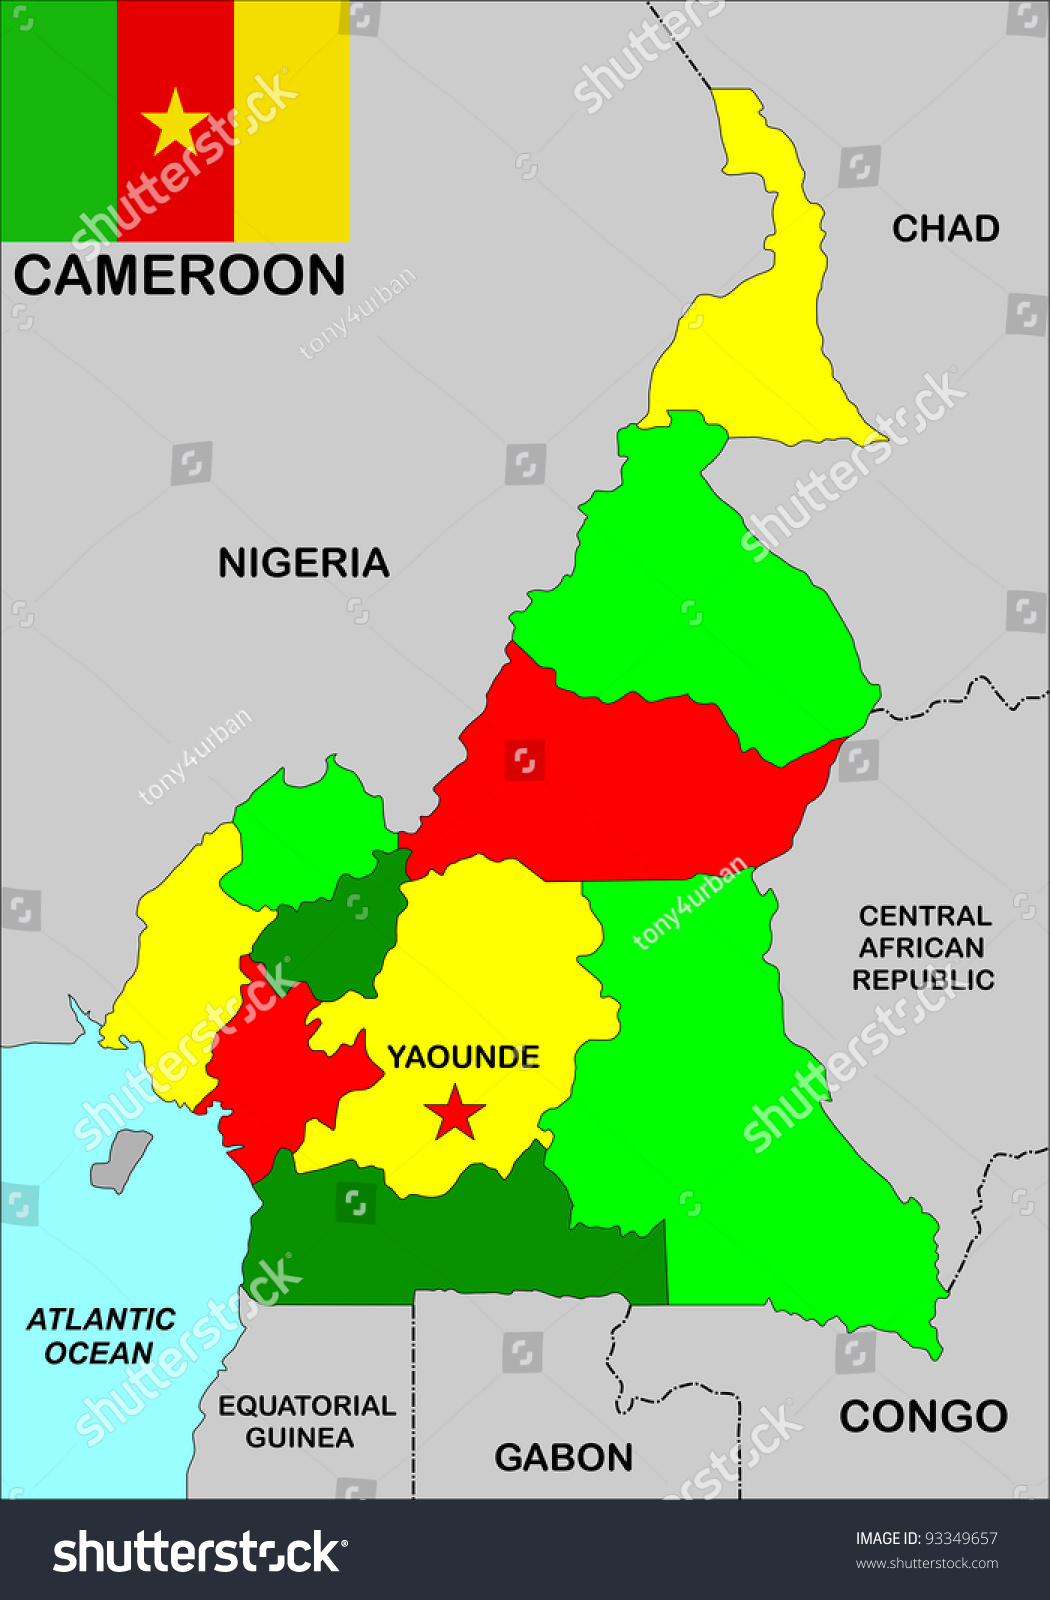 Very Big Size Cameroon Political Map Stock Illustration 93349657